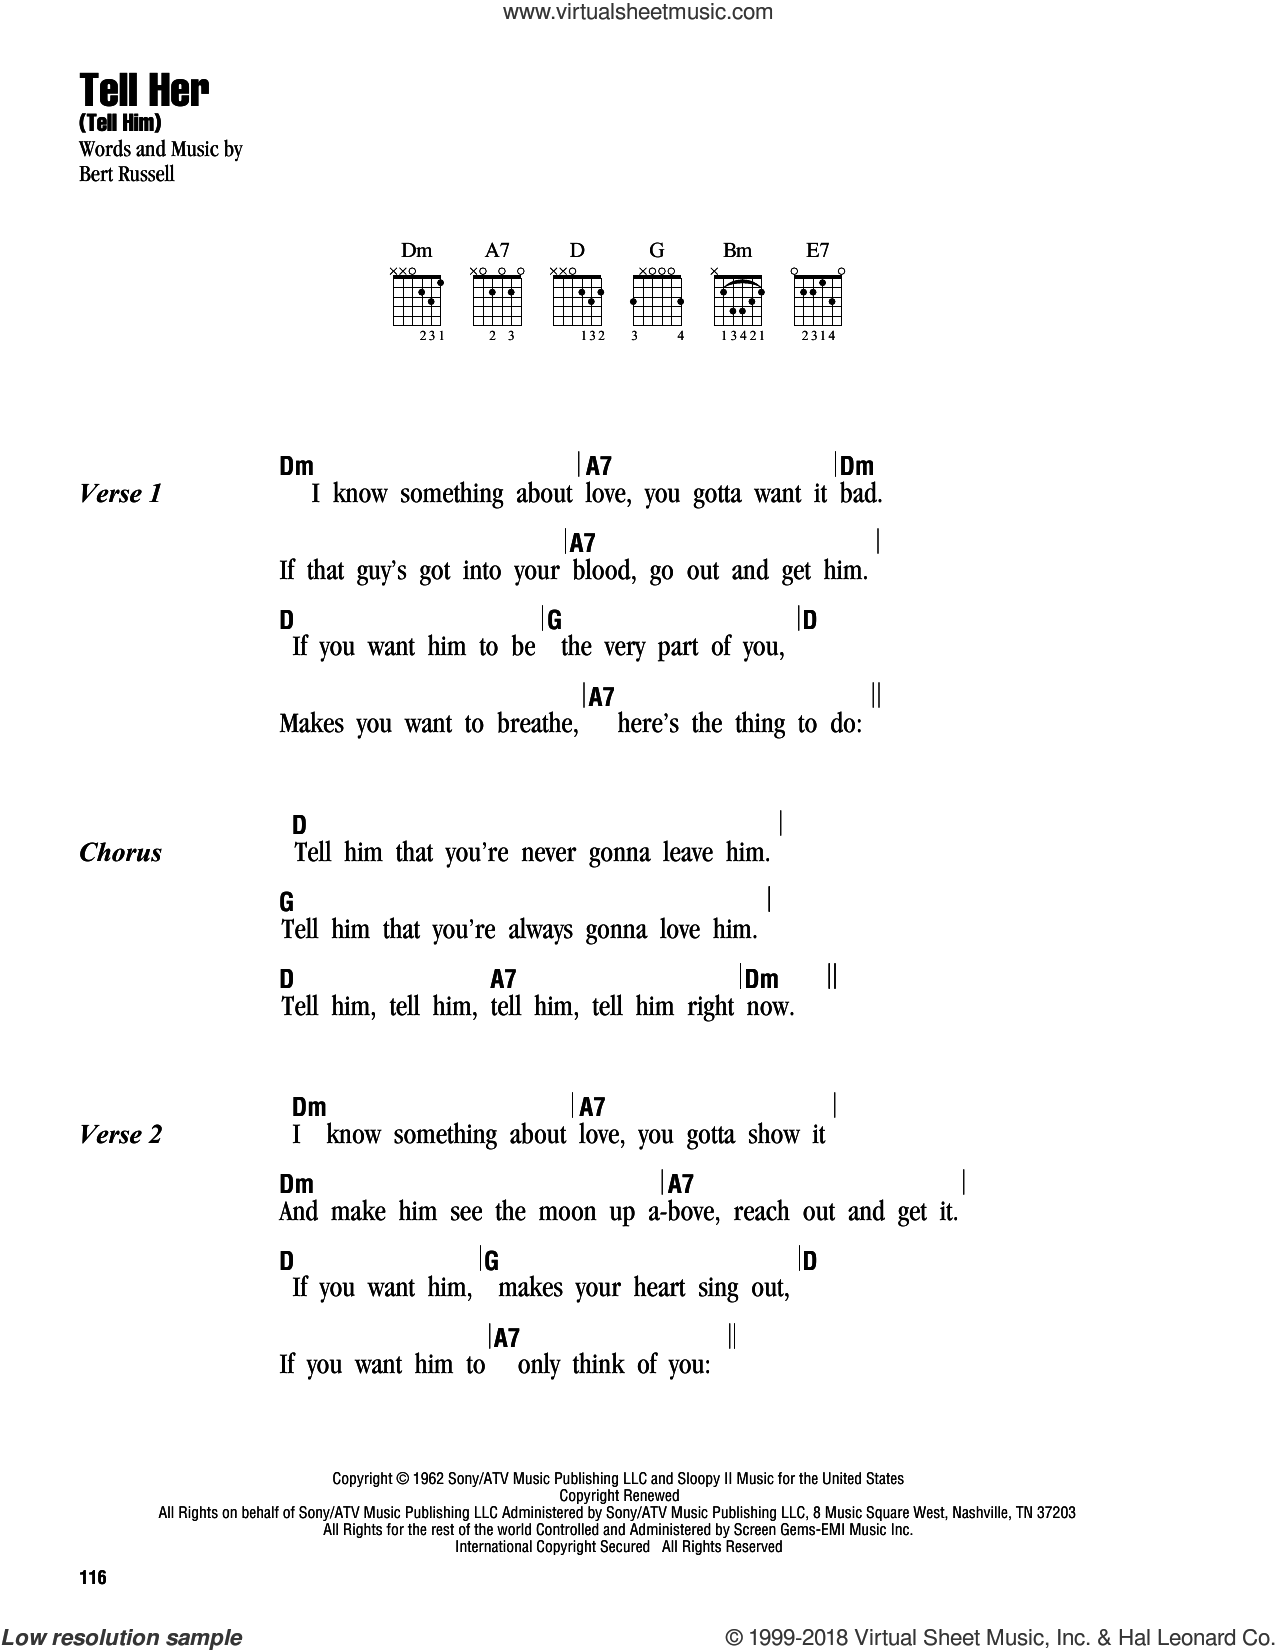 Tell Her (Tell Him) sheet music for guitar (chords) by Bert Russell